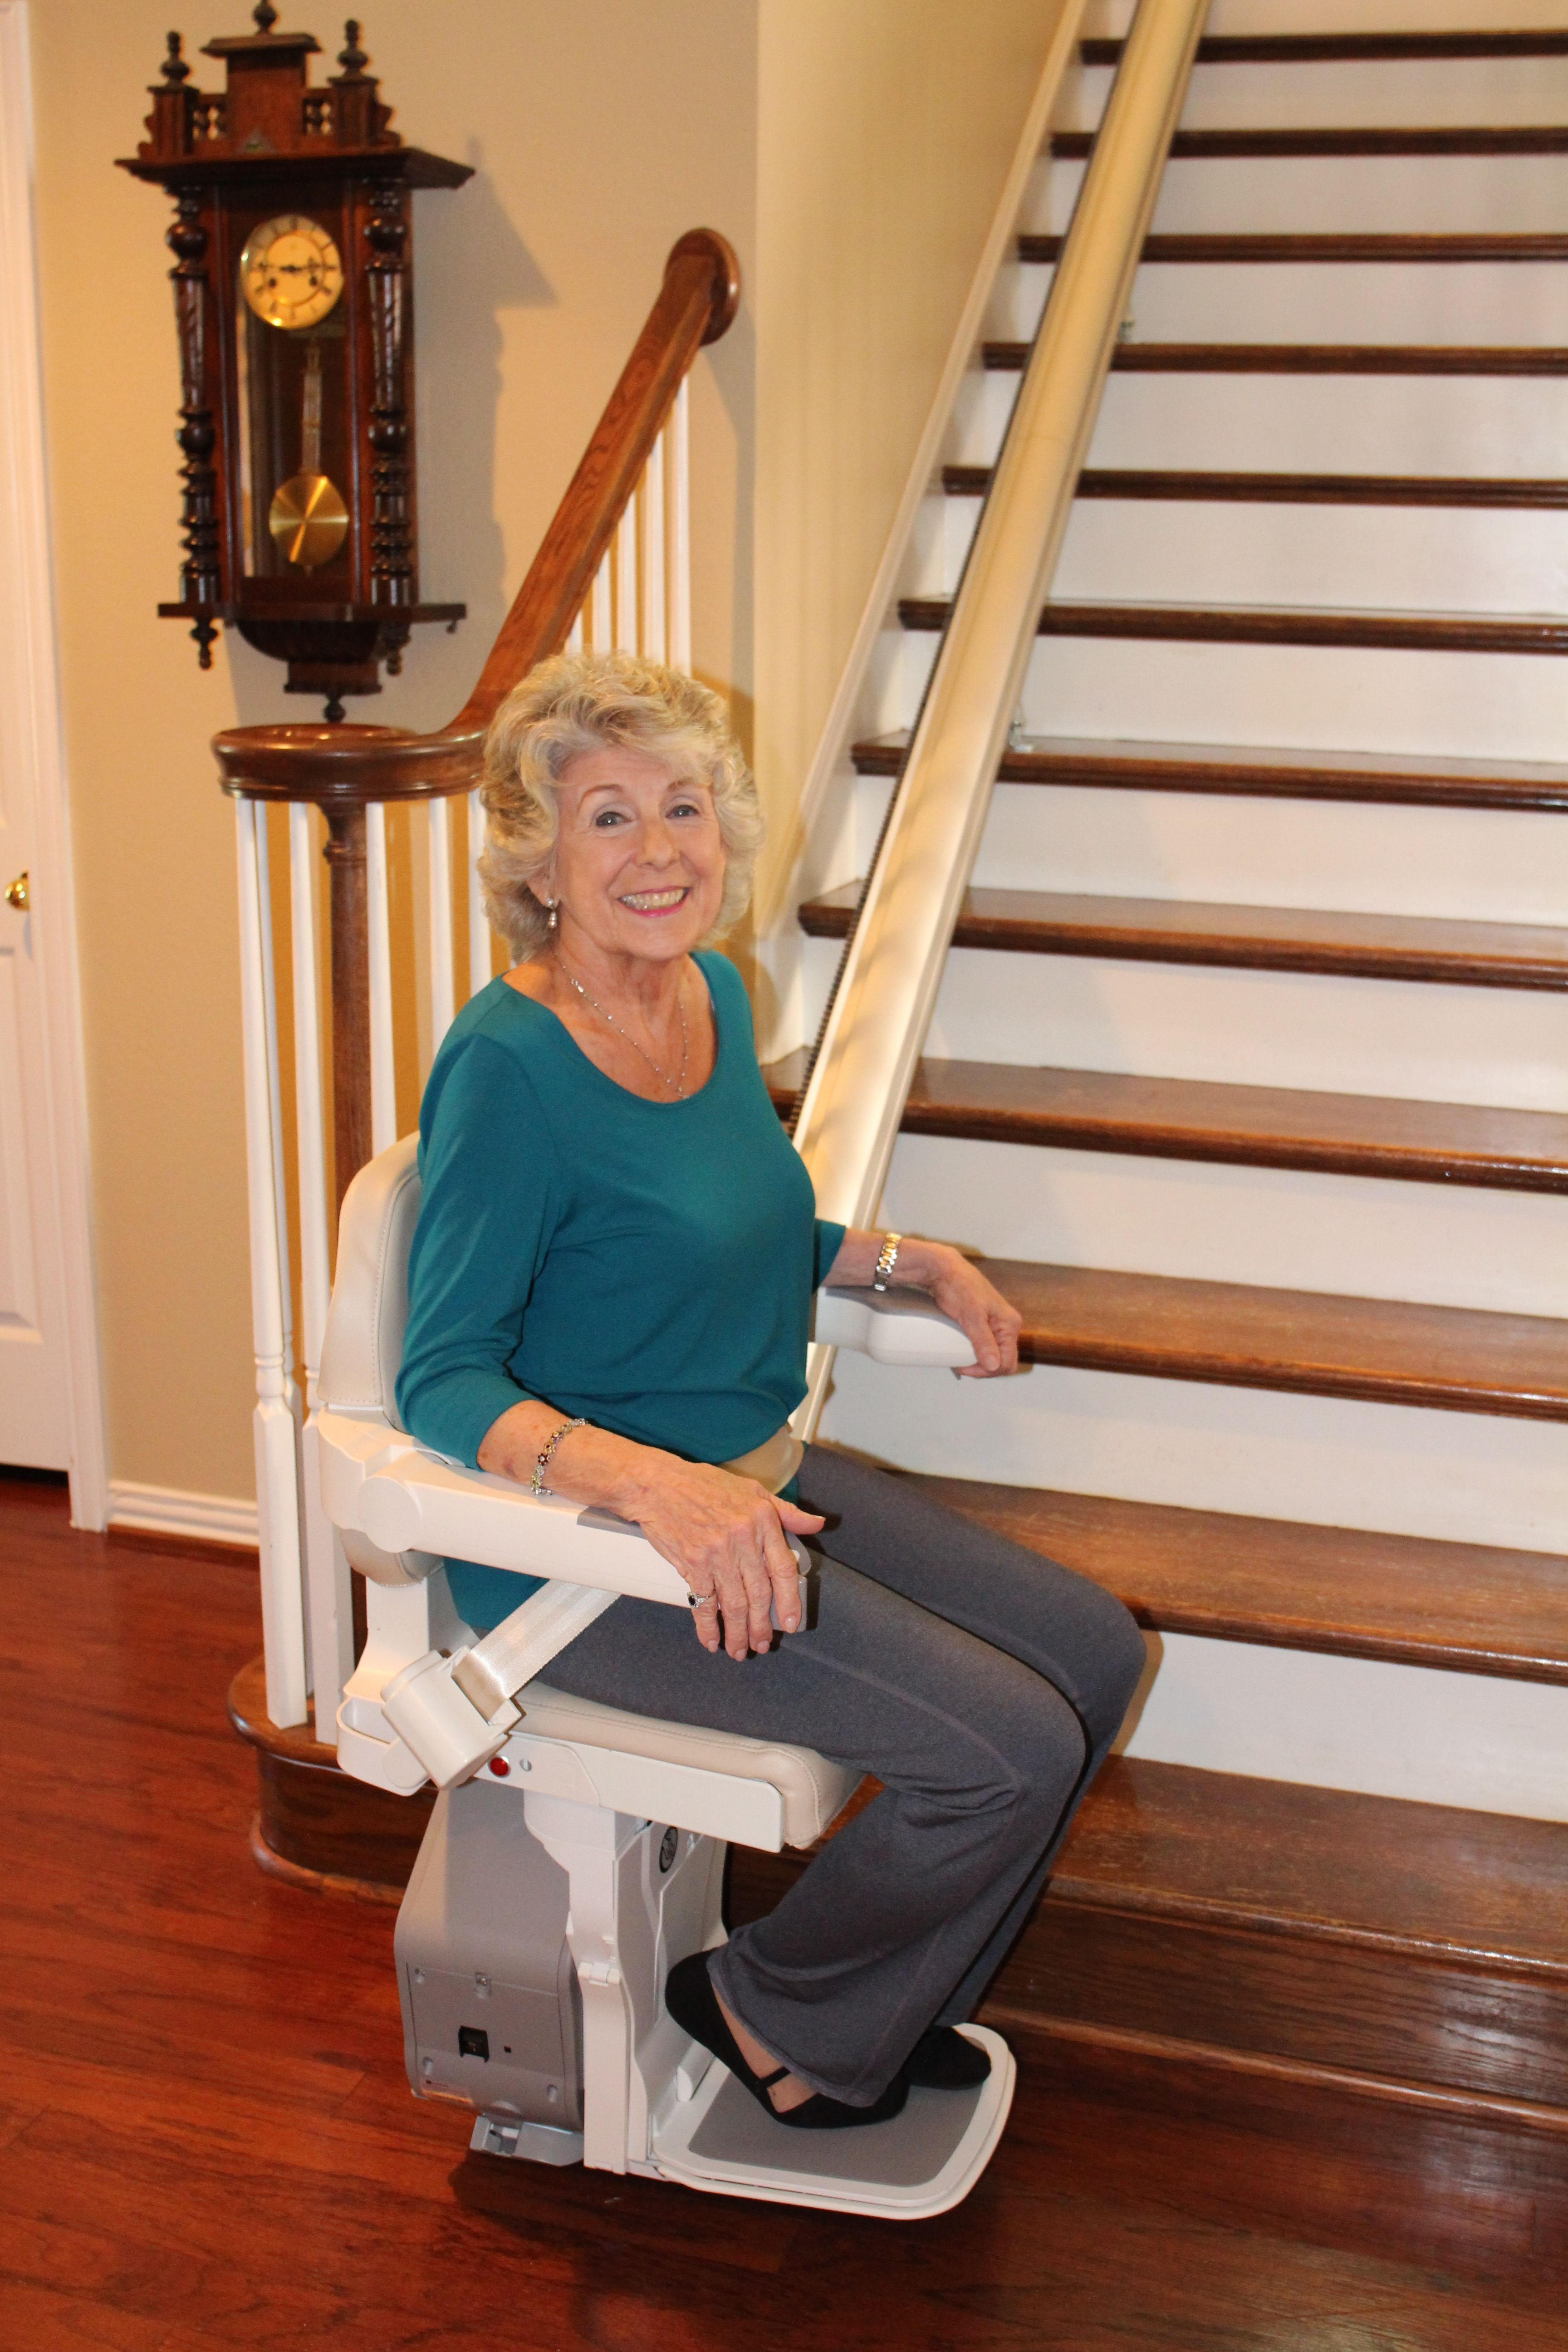 stair chair lifts for seniors hanging ideas pin by easy climber on help aging in place pinterest